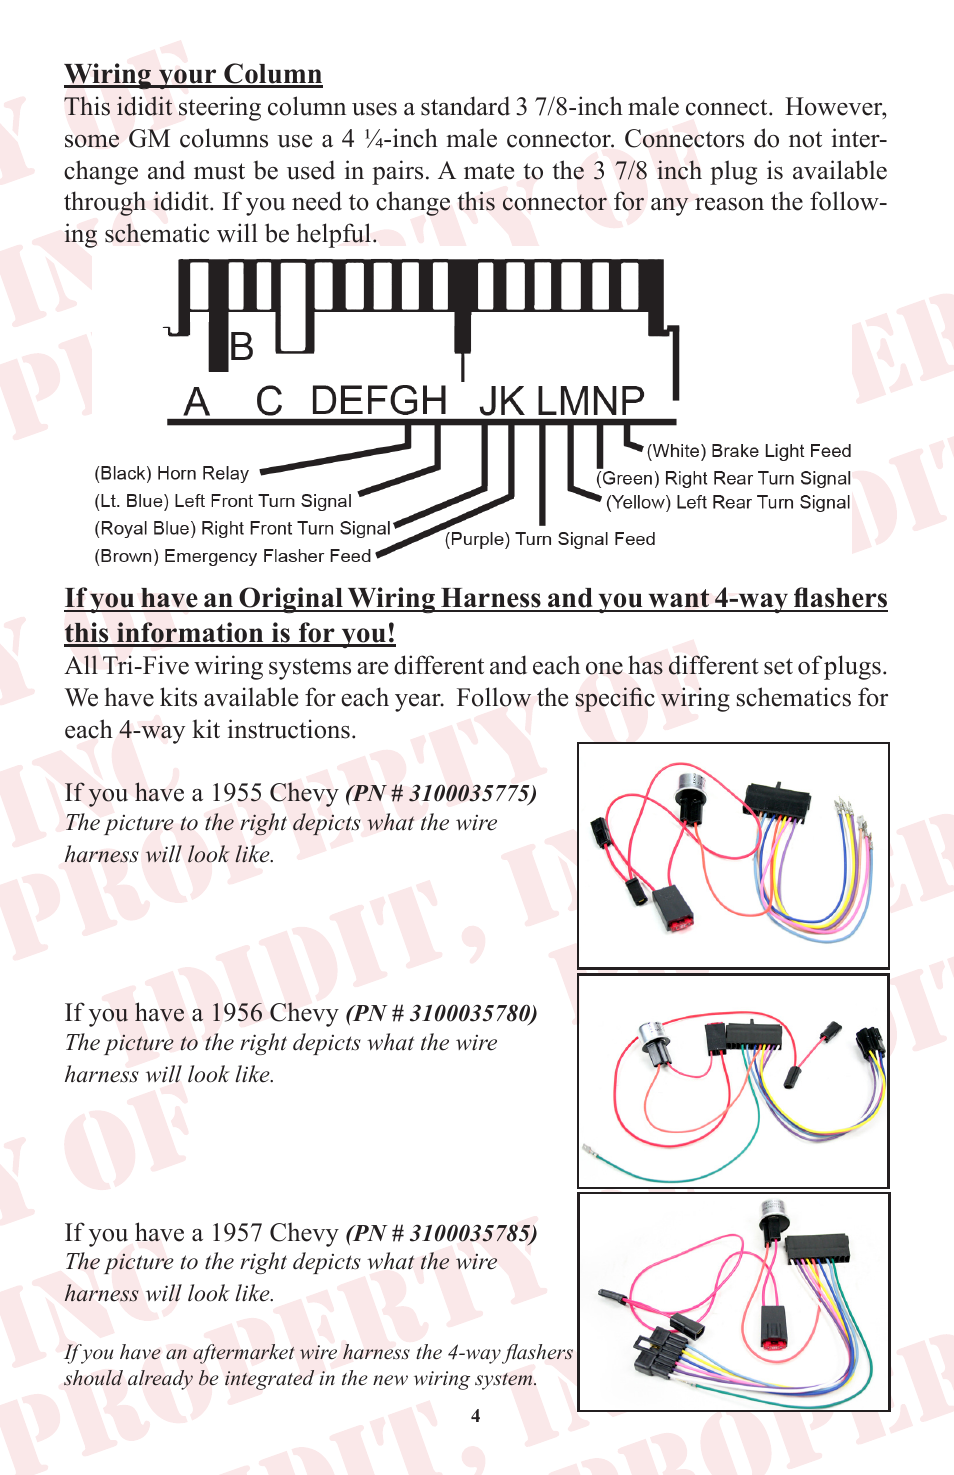 ididit retrofit steering column: tri-five chevy user manual | page 5 / 18